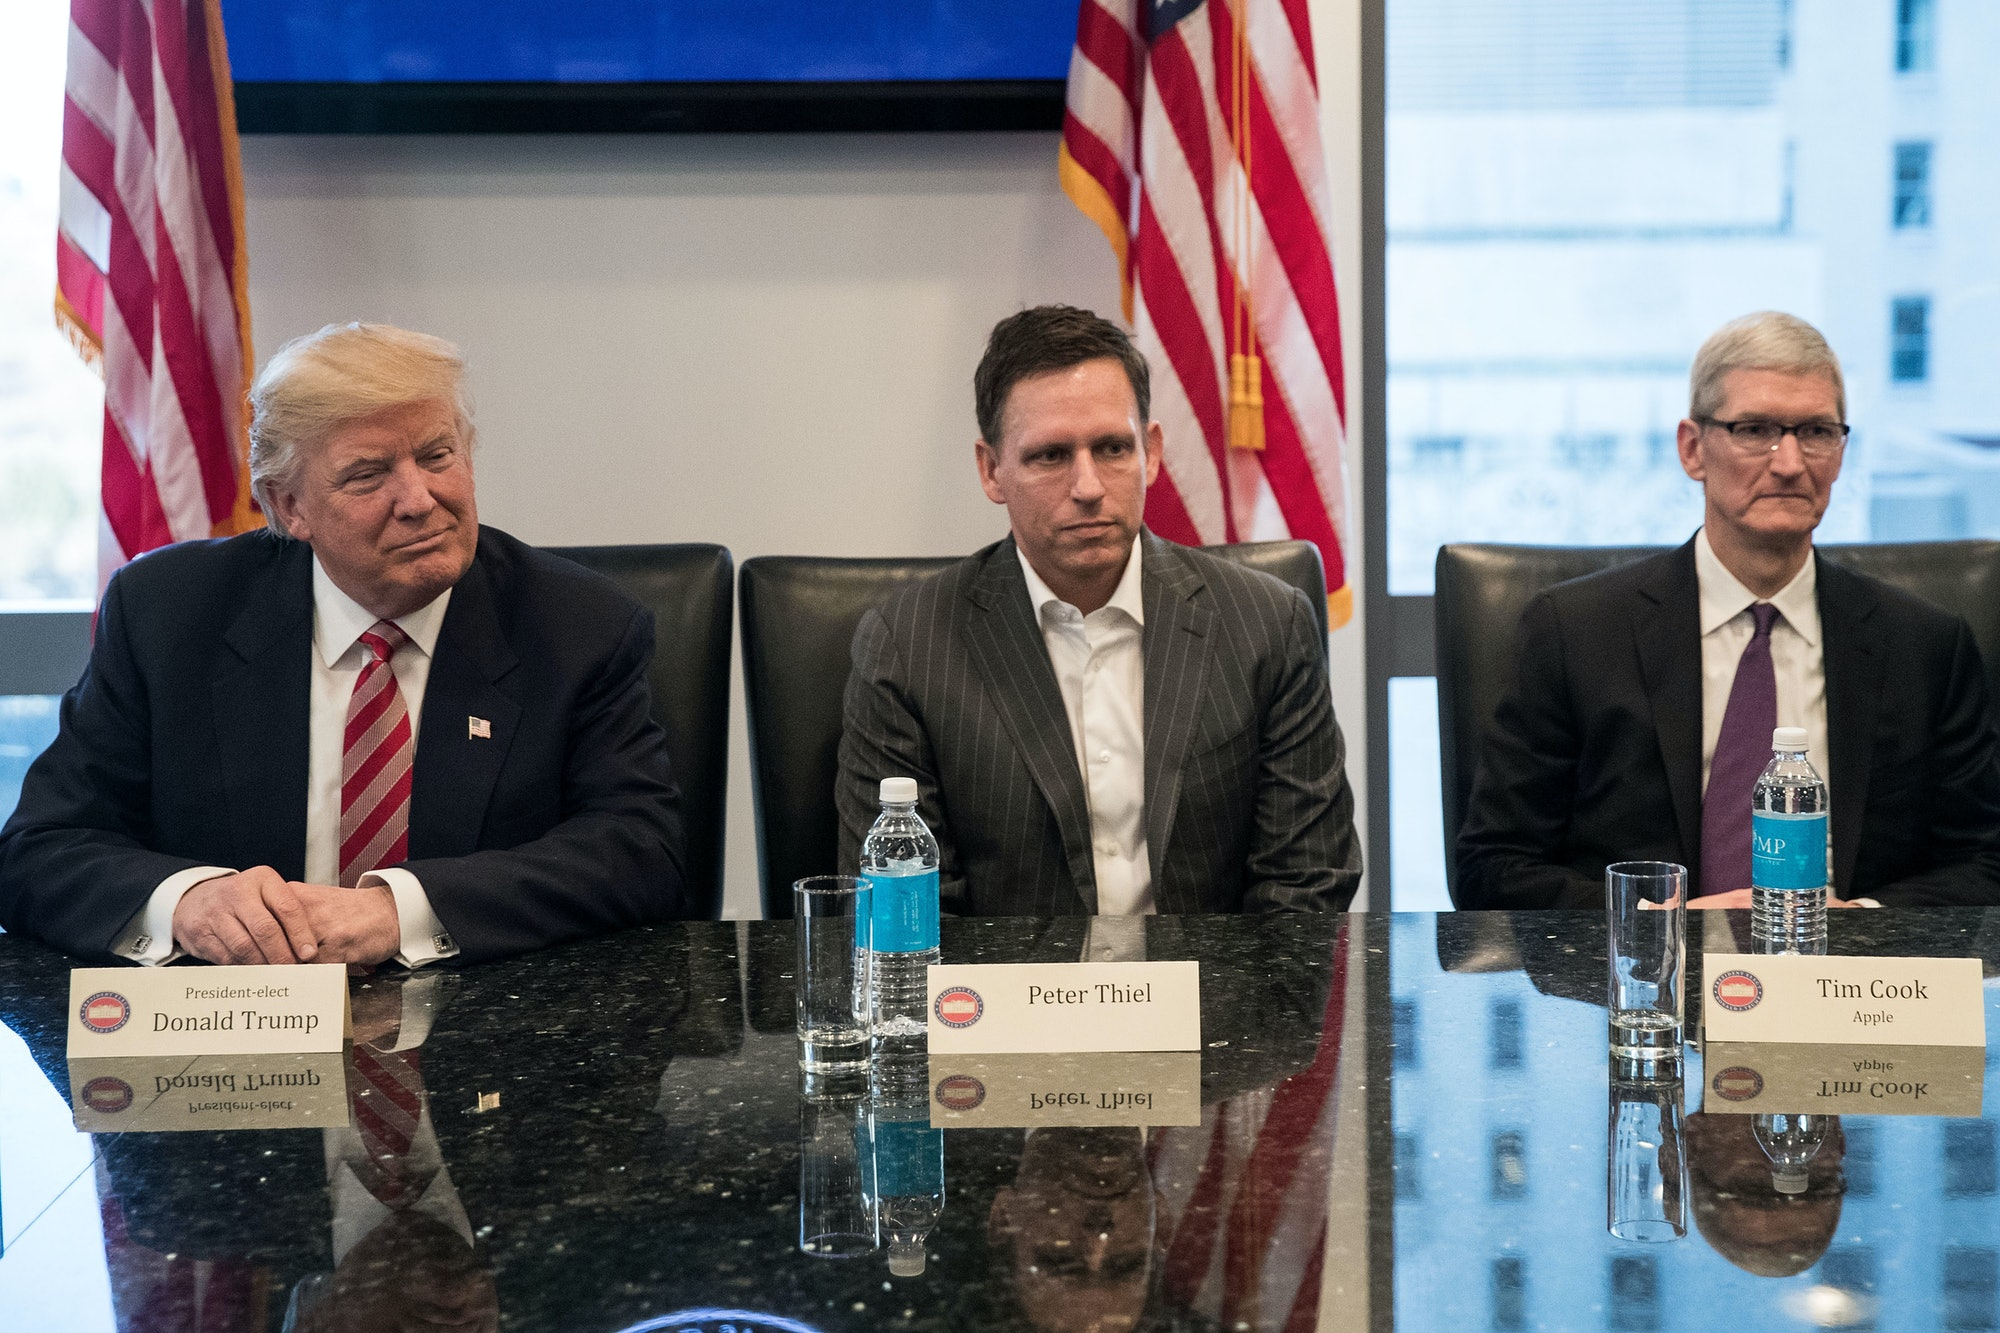 Trump's December meeting with tech CEOs.